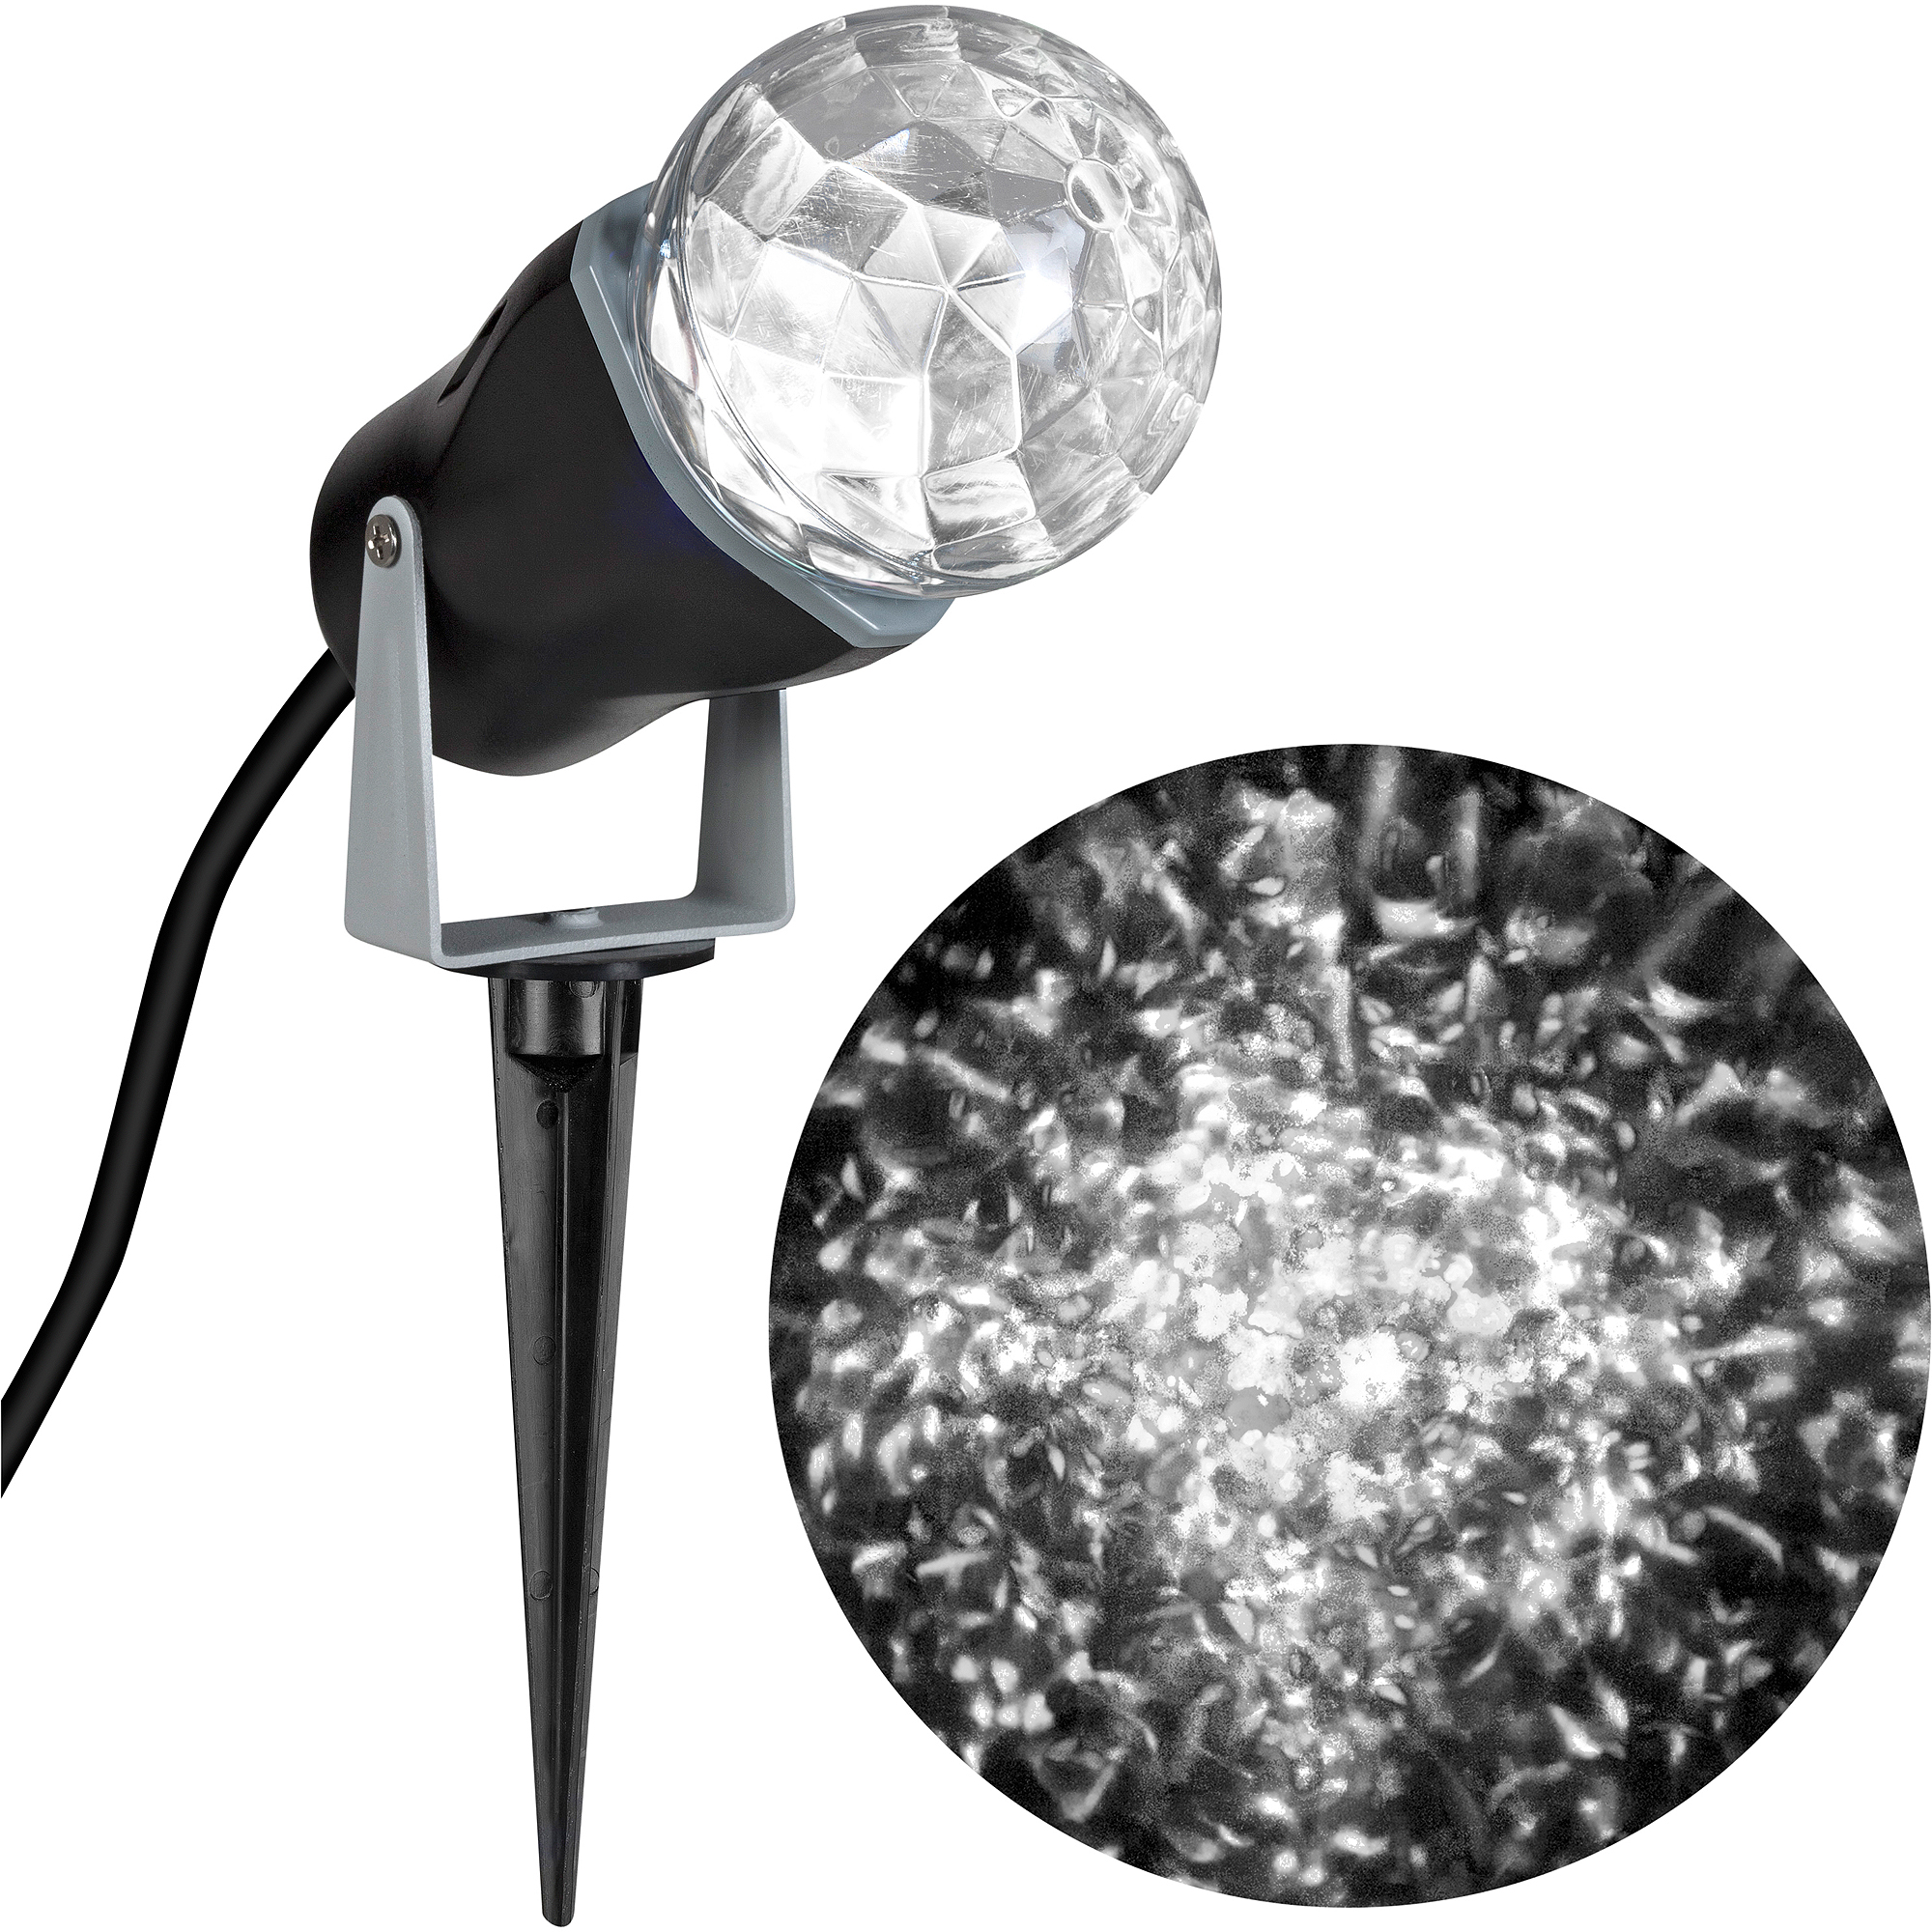 Gemmy Lightshow Christmas Lights Projection Kaleidoscope Lights, White